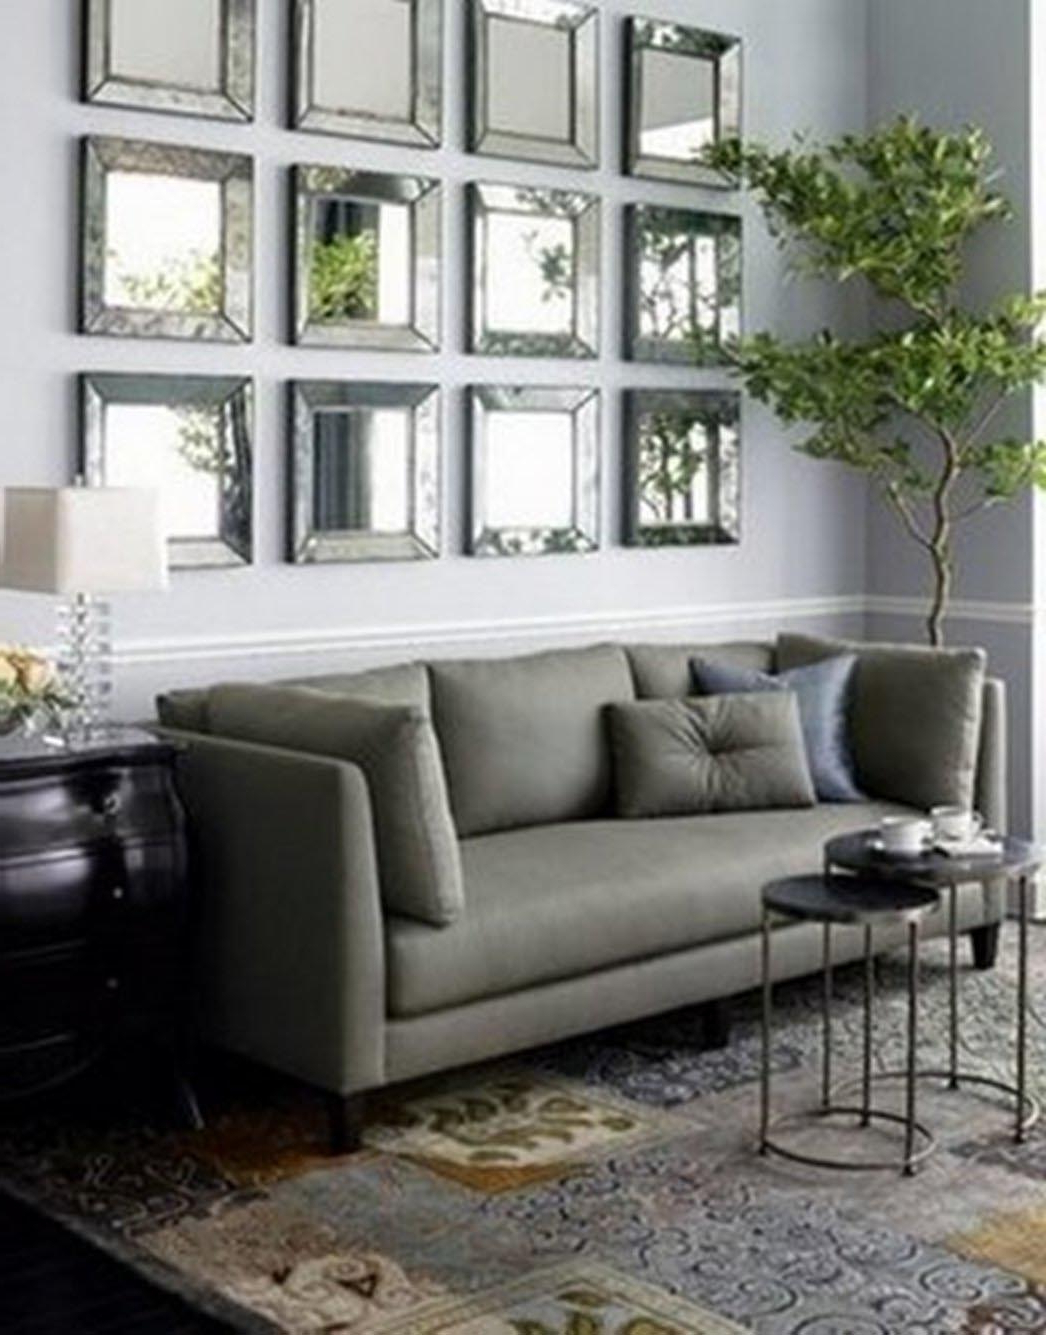 Decorative Contemporary Wall Mirrors Pertaining To Well Liked Modern Wall Mirrors For Living Room (View 4 of 20)